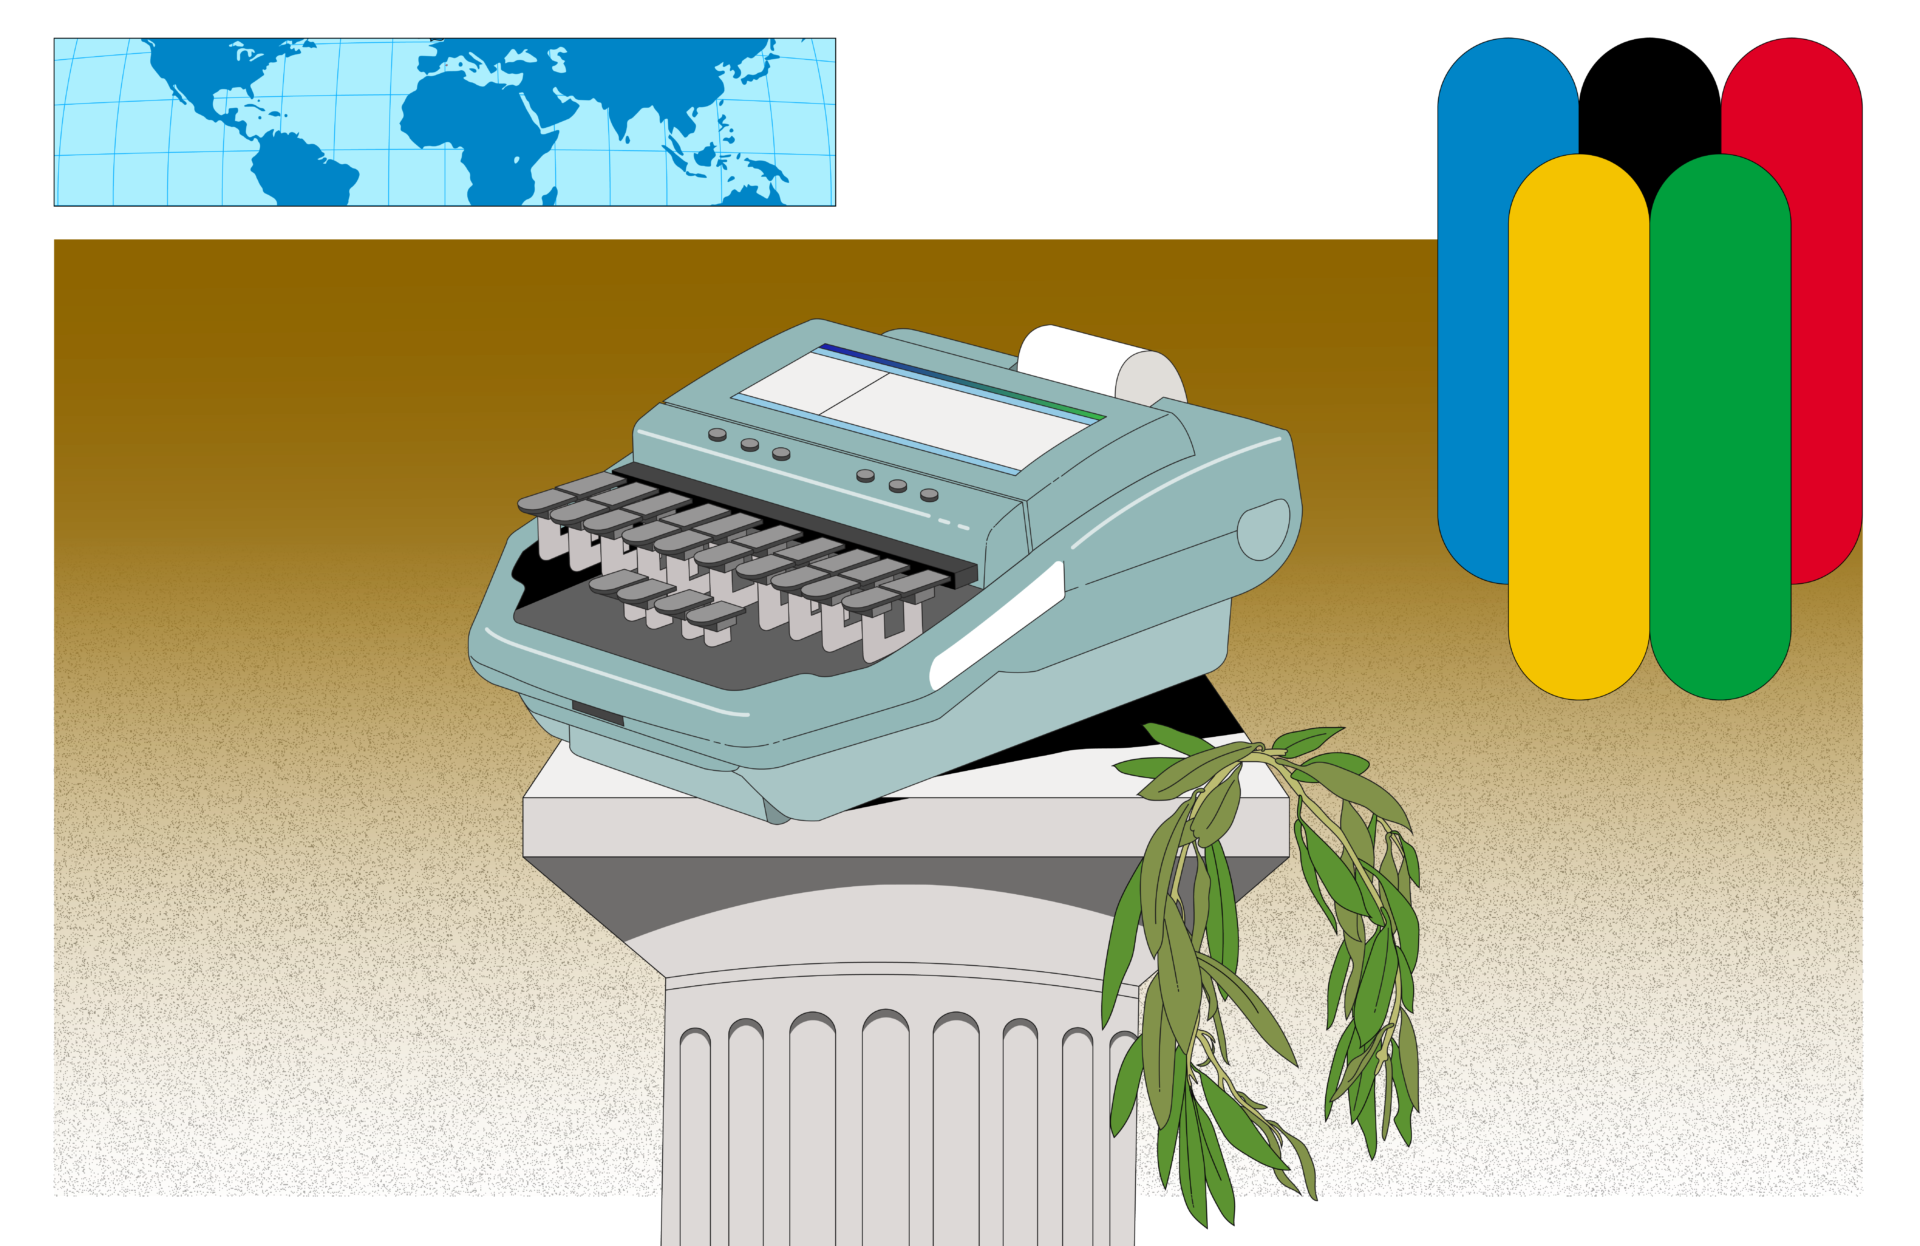 An illustration of a stenograph machine on a Roman column. The Olympic colours are in one corner and a world map in the other.